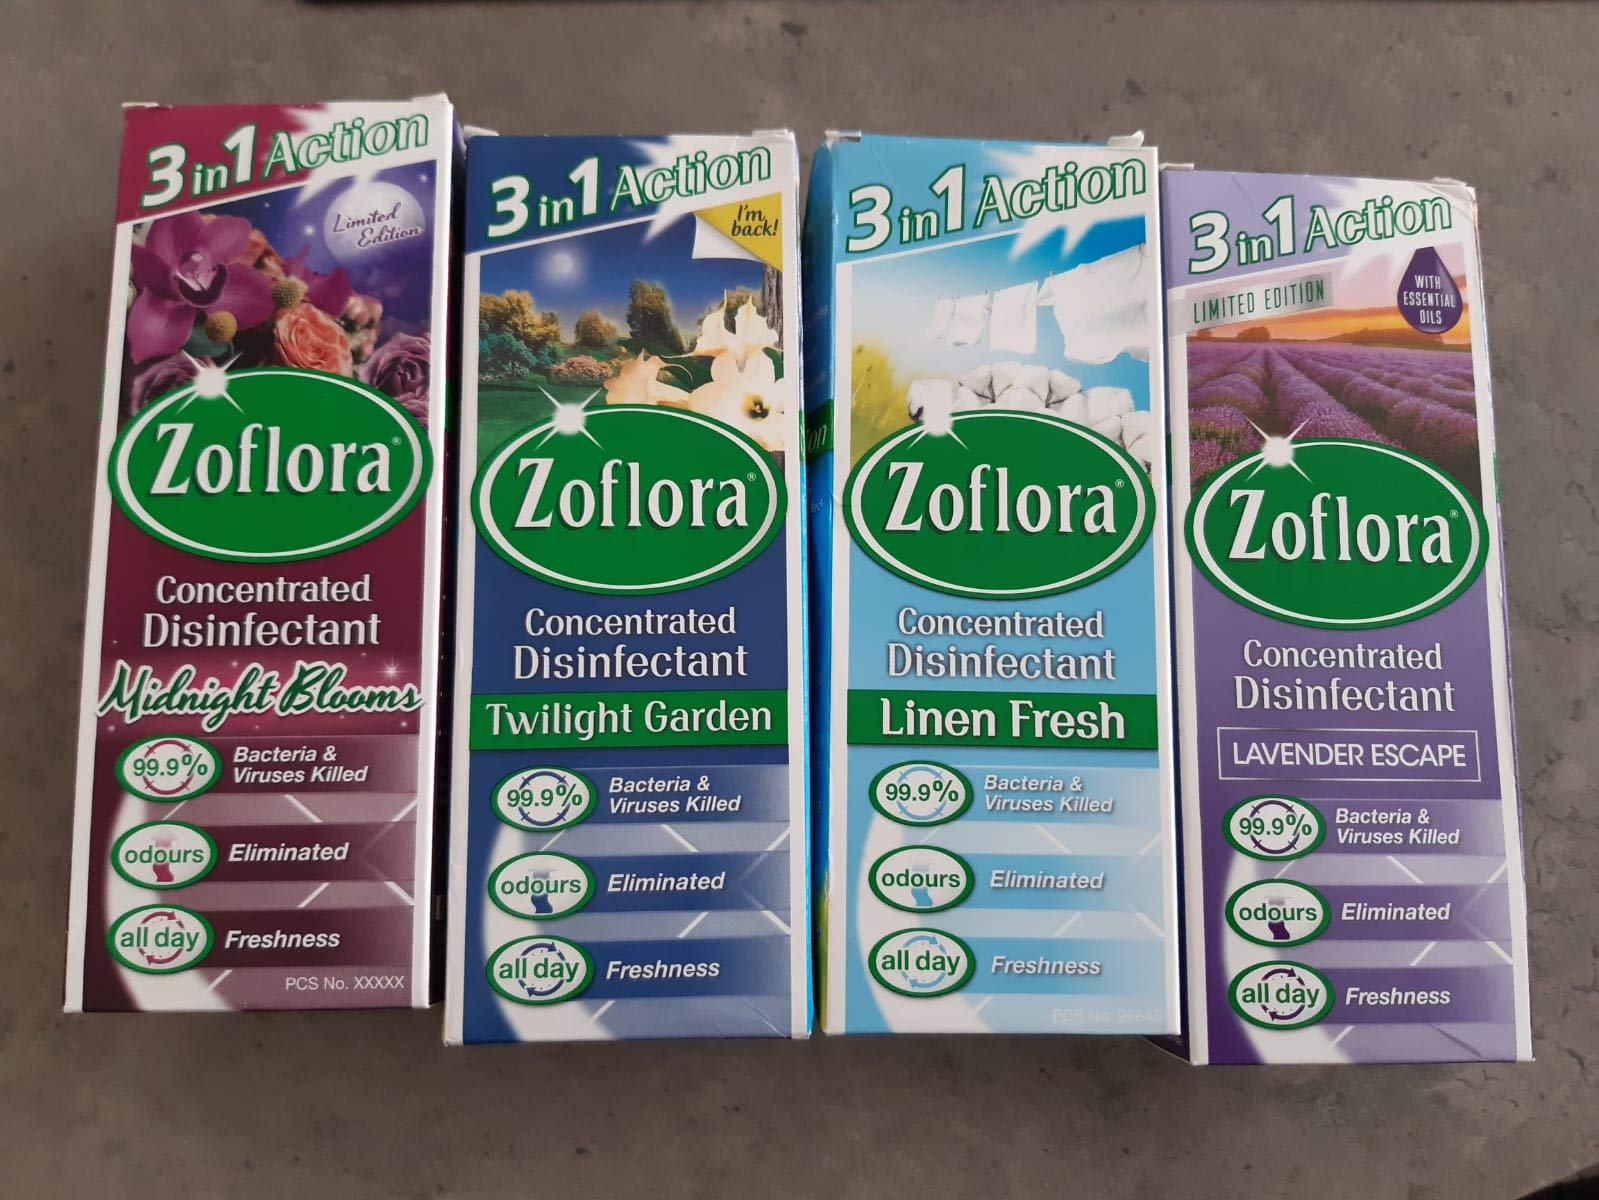 Zoflora Antibacterial Disinfectant Fragranced 120ml Twilight Garden